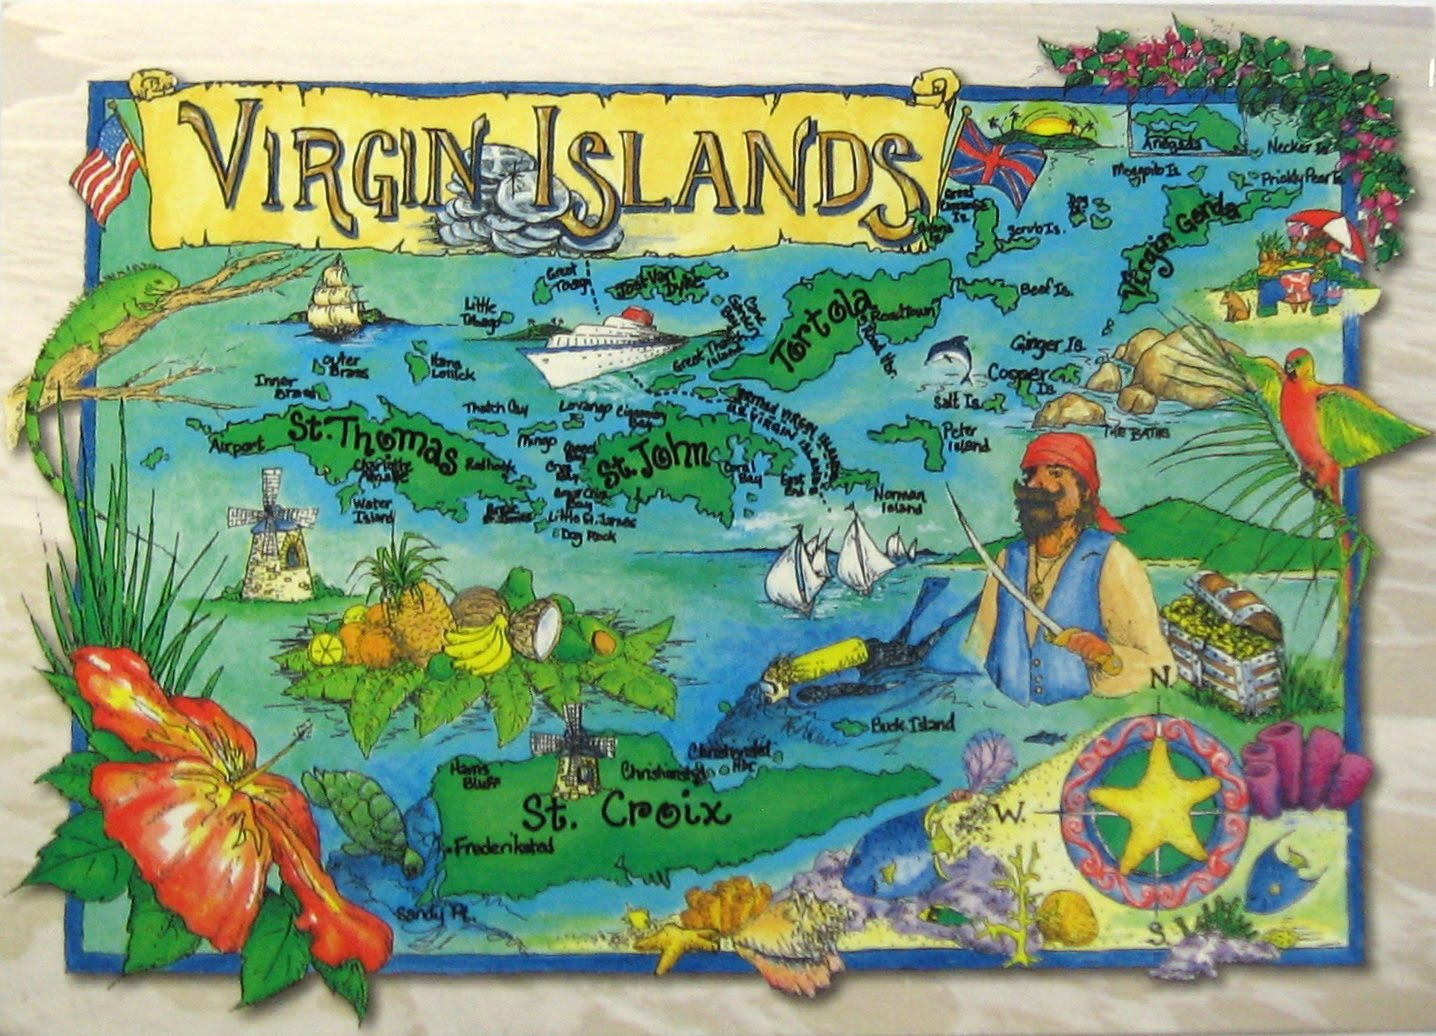 virgin islands of the united states commonly called the united states virgin islands is a group of islands in the caribbean that are an insular area of